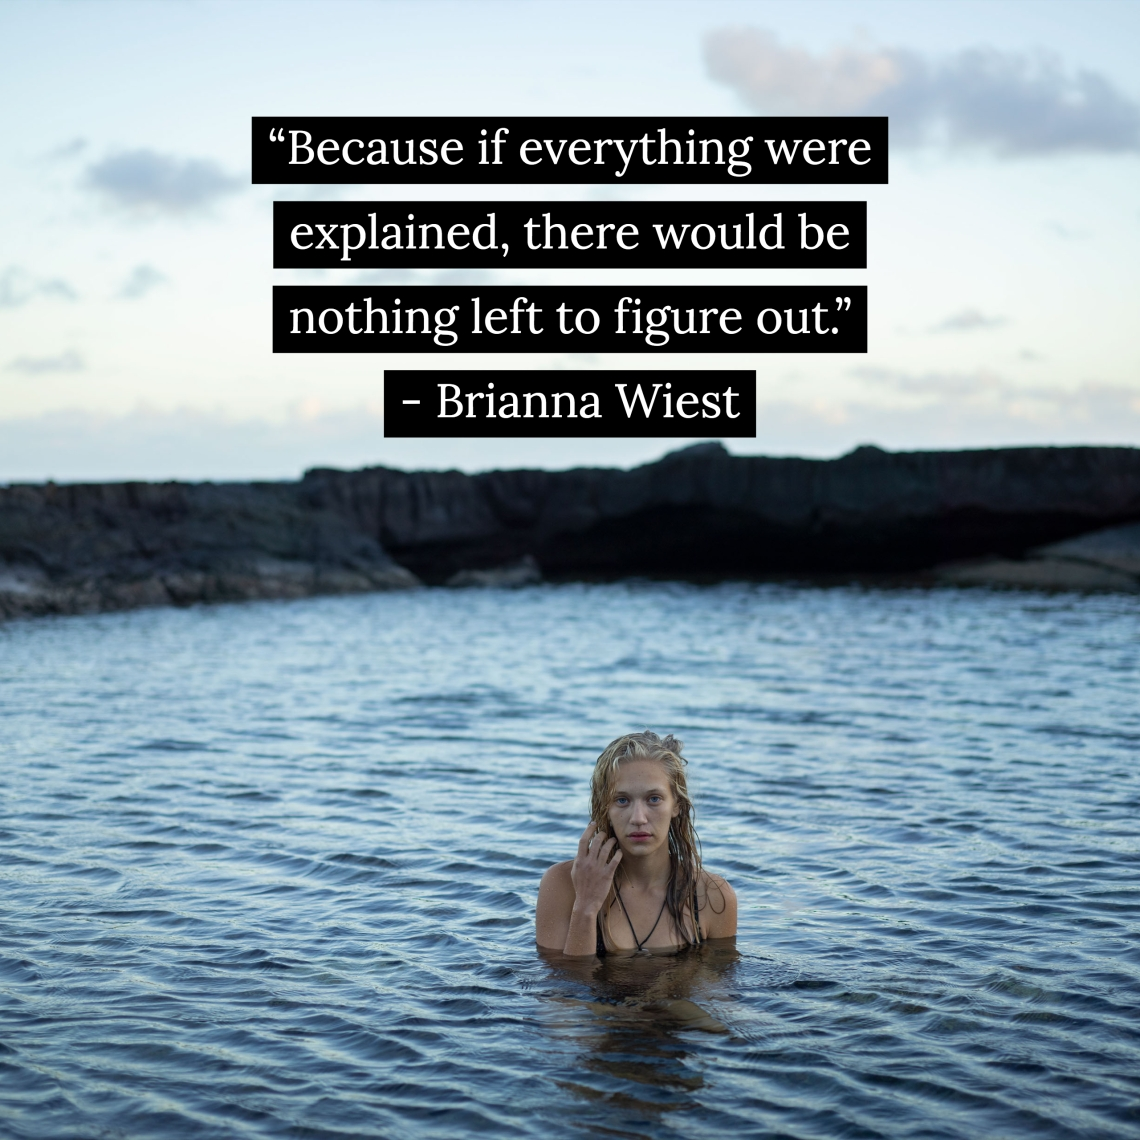 Quote from Brianna Wiest